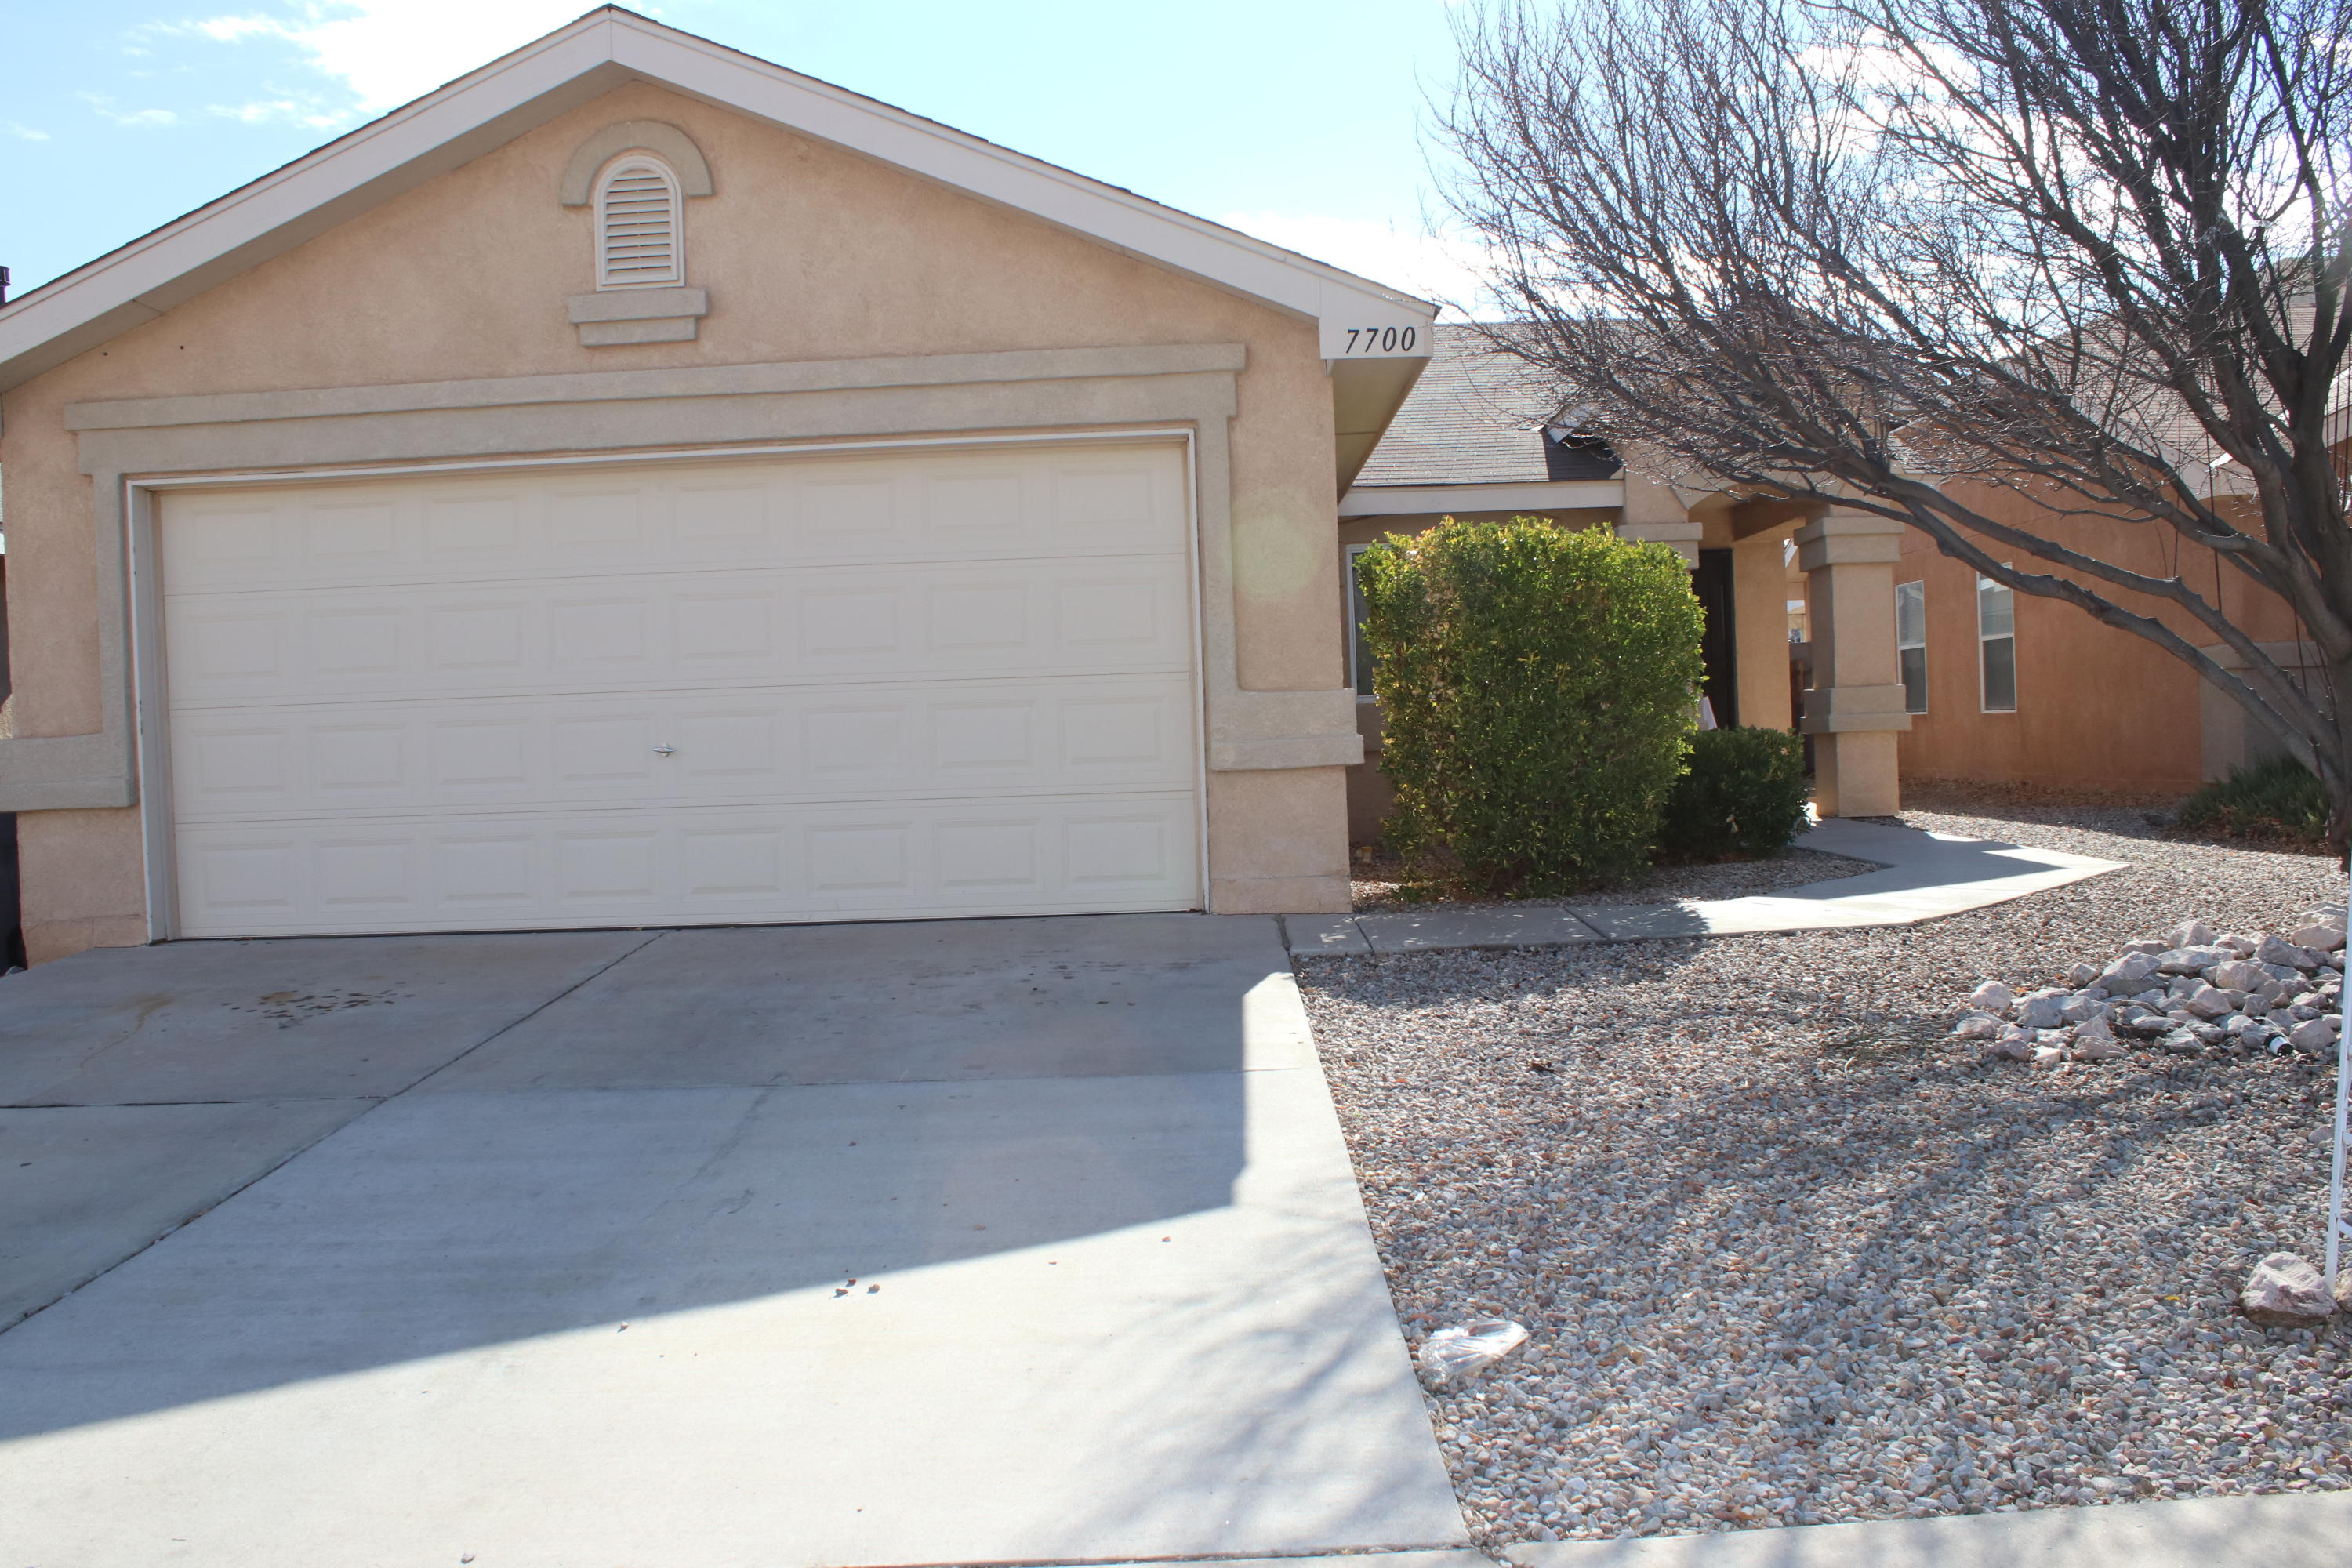 Come see this beautiful home in the SW. Property is close to shopping centers, public library and easy access to I-40.